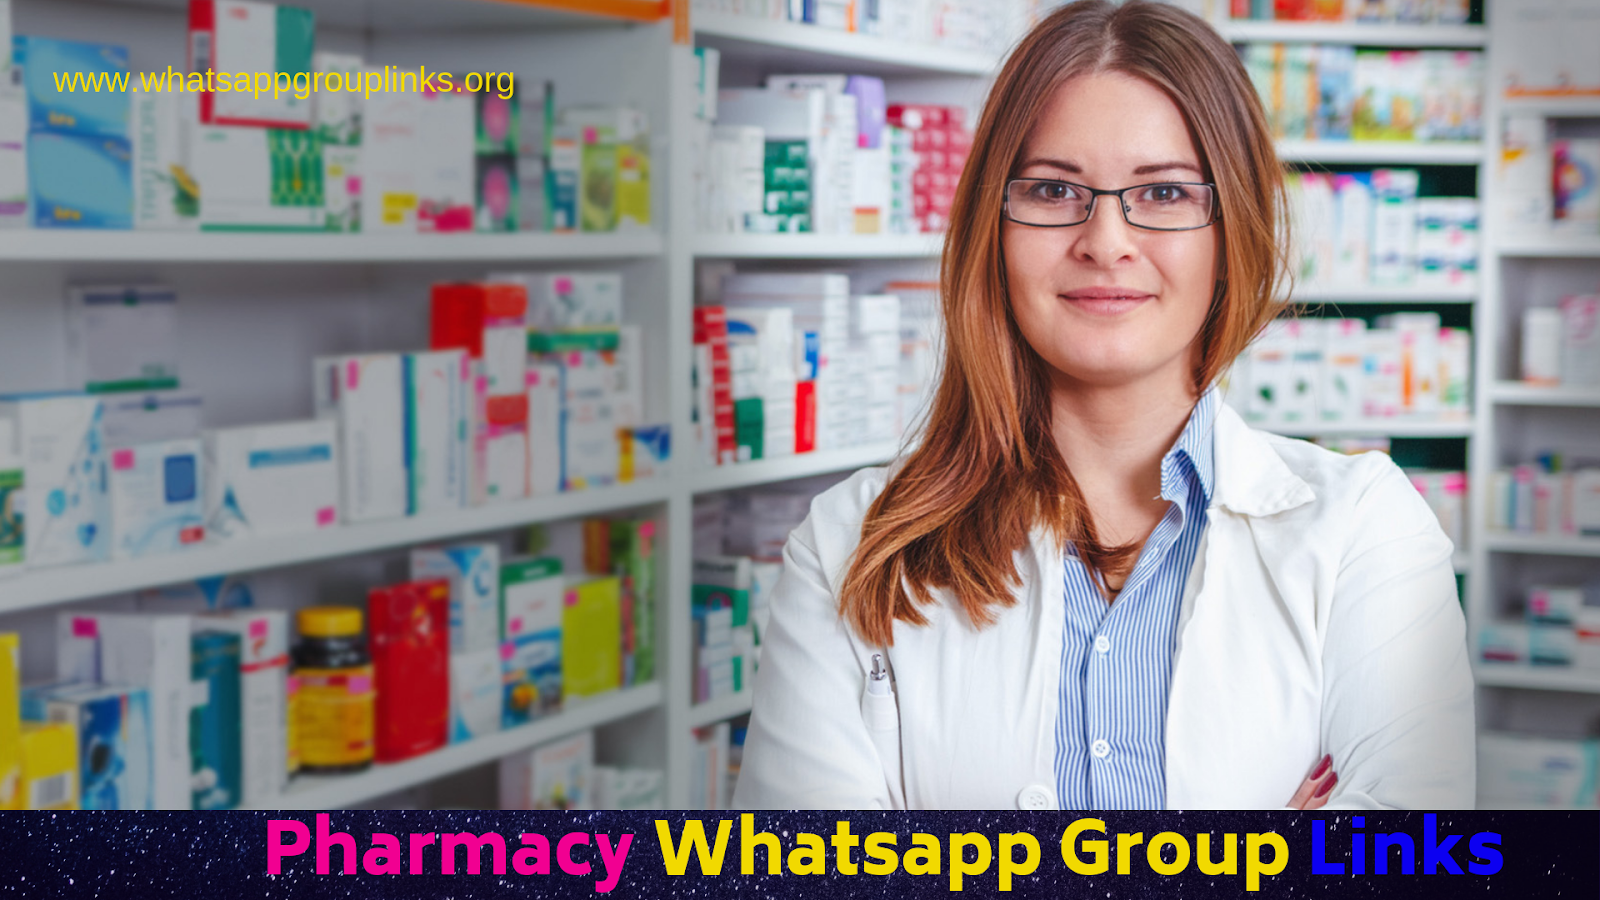 Join Pharmacy Whatsapp Group Links List - Whatsapp Group Links